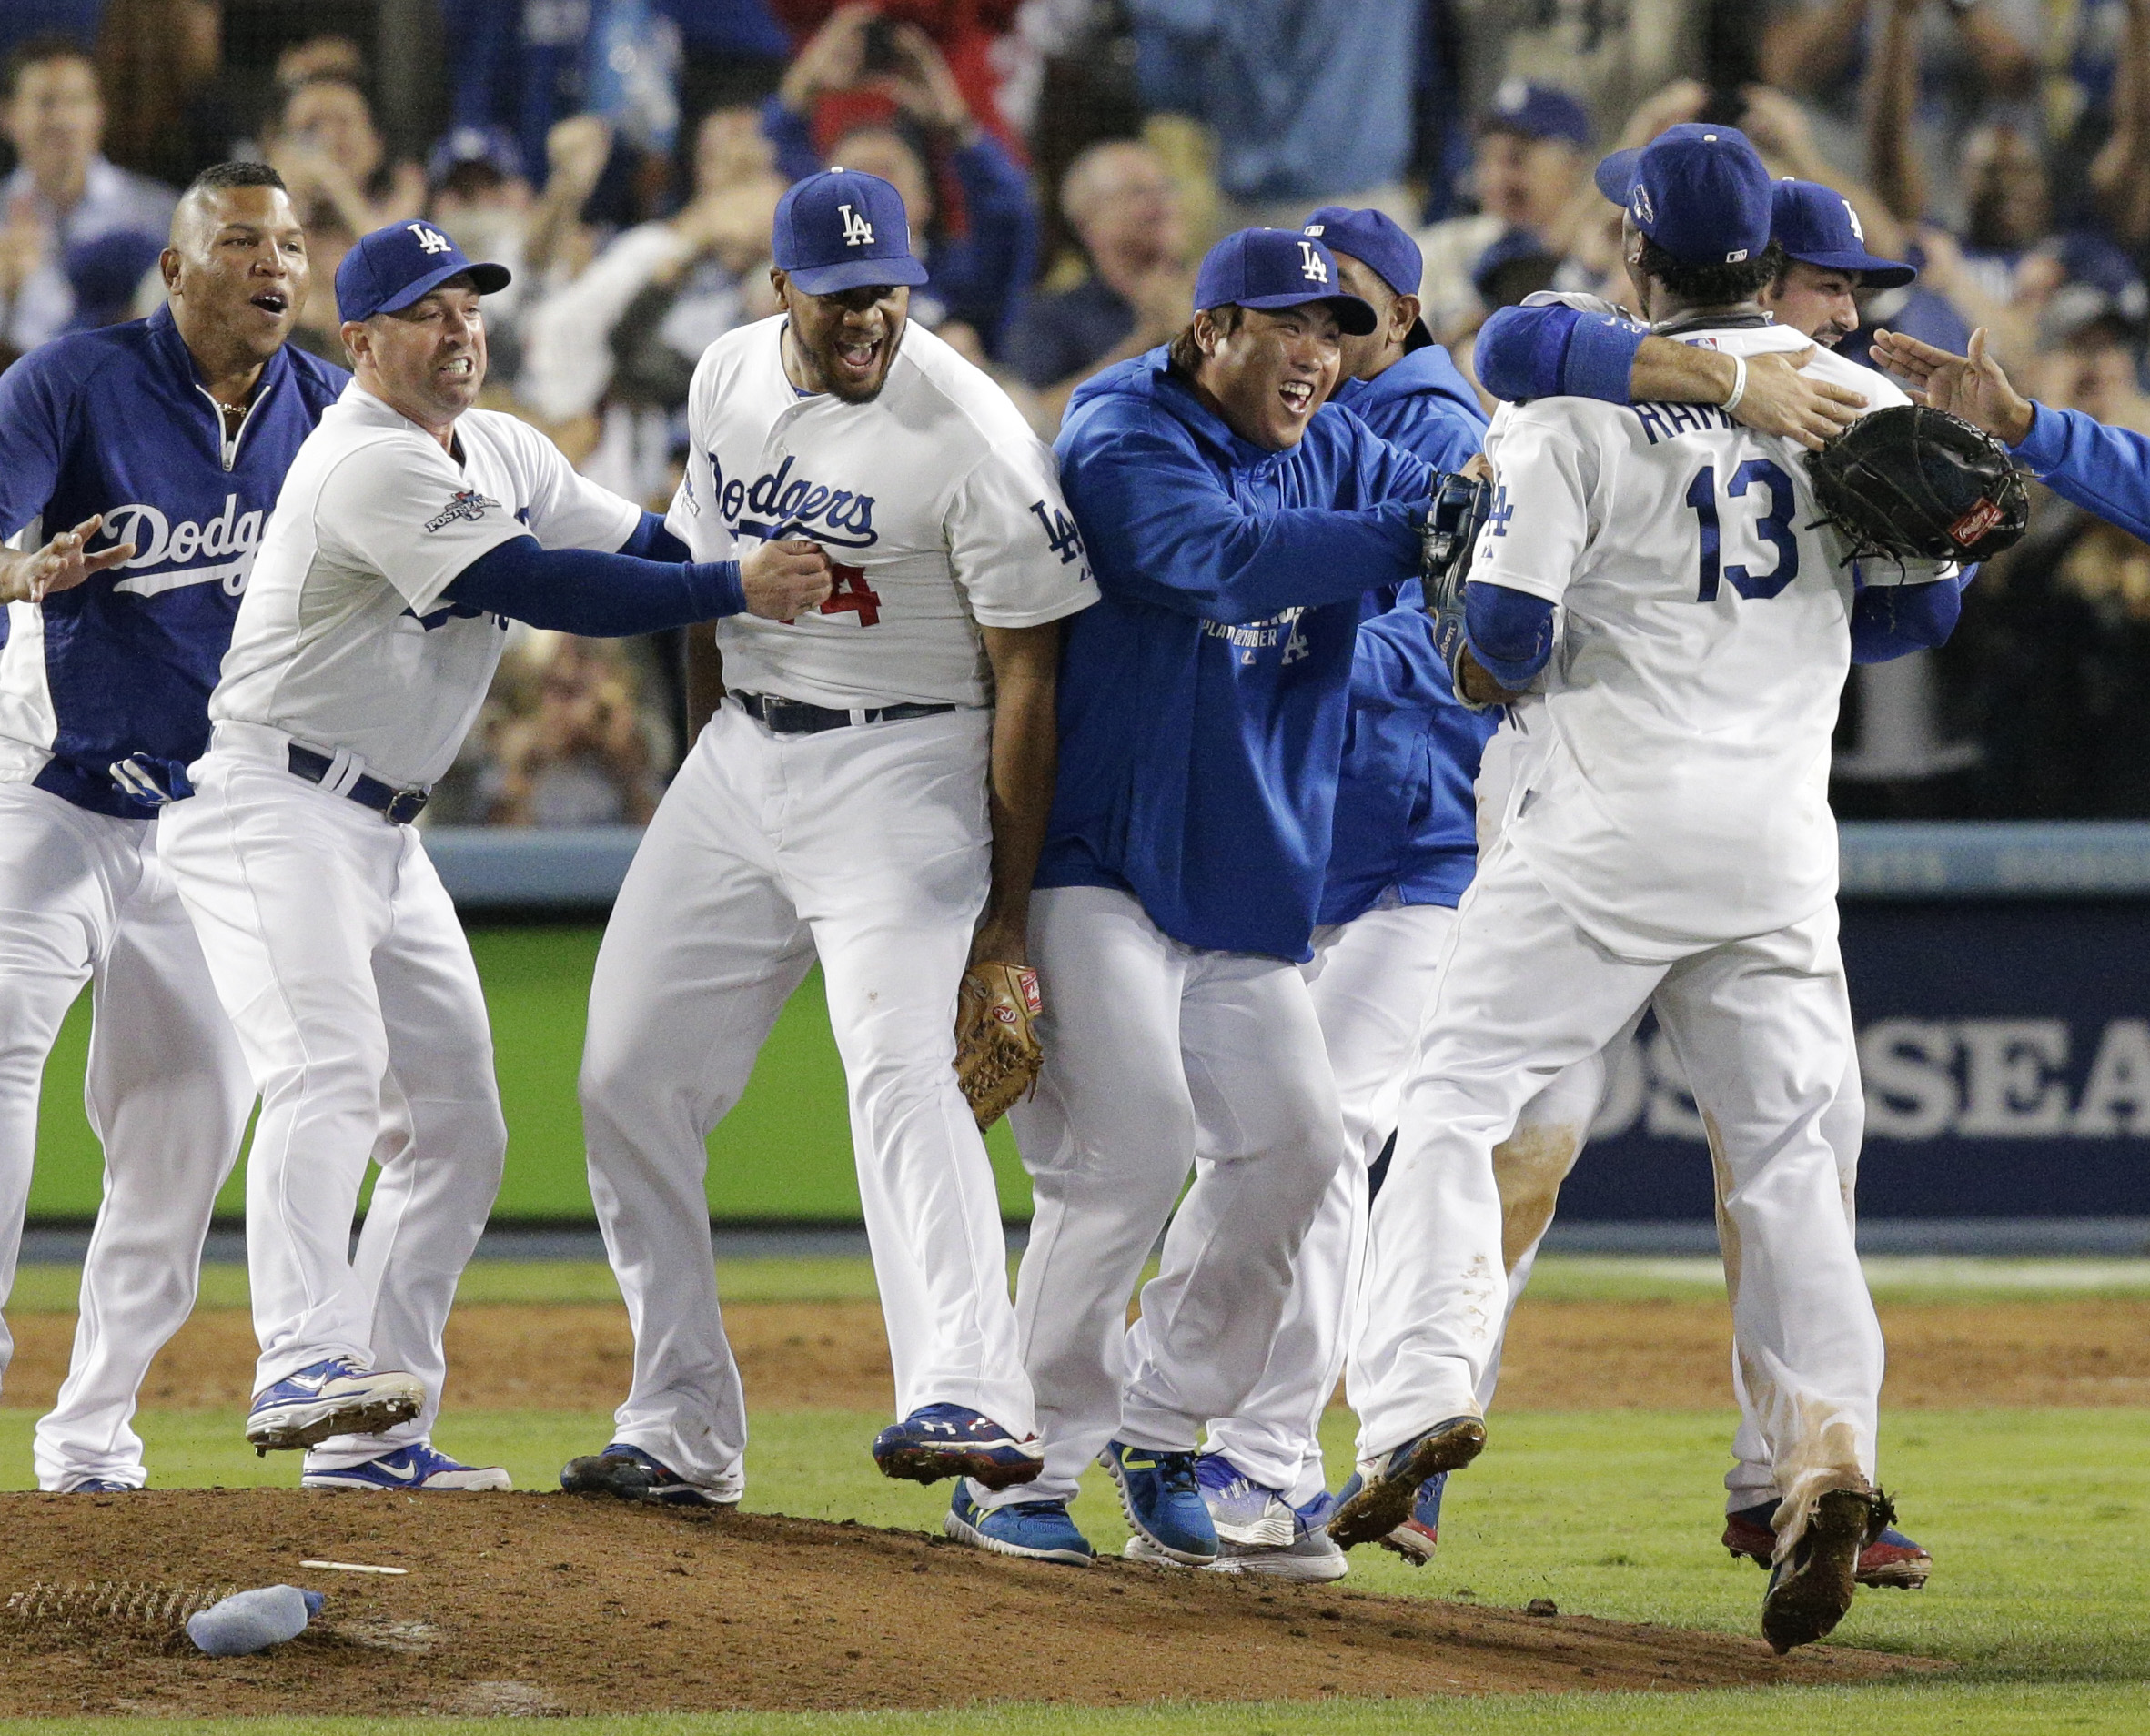 Los Angeles Dodgers pitcher Hyun-Jin Ryu,center right,  of South Korea, joins teammates in celebrating the Dodgers' 4-3 win over the Atlanta Braves in Game 4 of the National League baseball division series Monday, Oct. 7, 2013, in Los Angeles. The Dodgers advanced to the NL championship series. (AP Photo/Jae C. Hong)